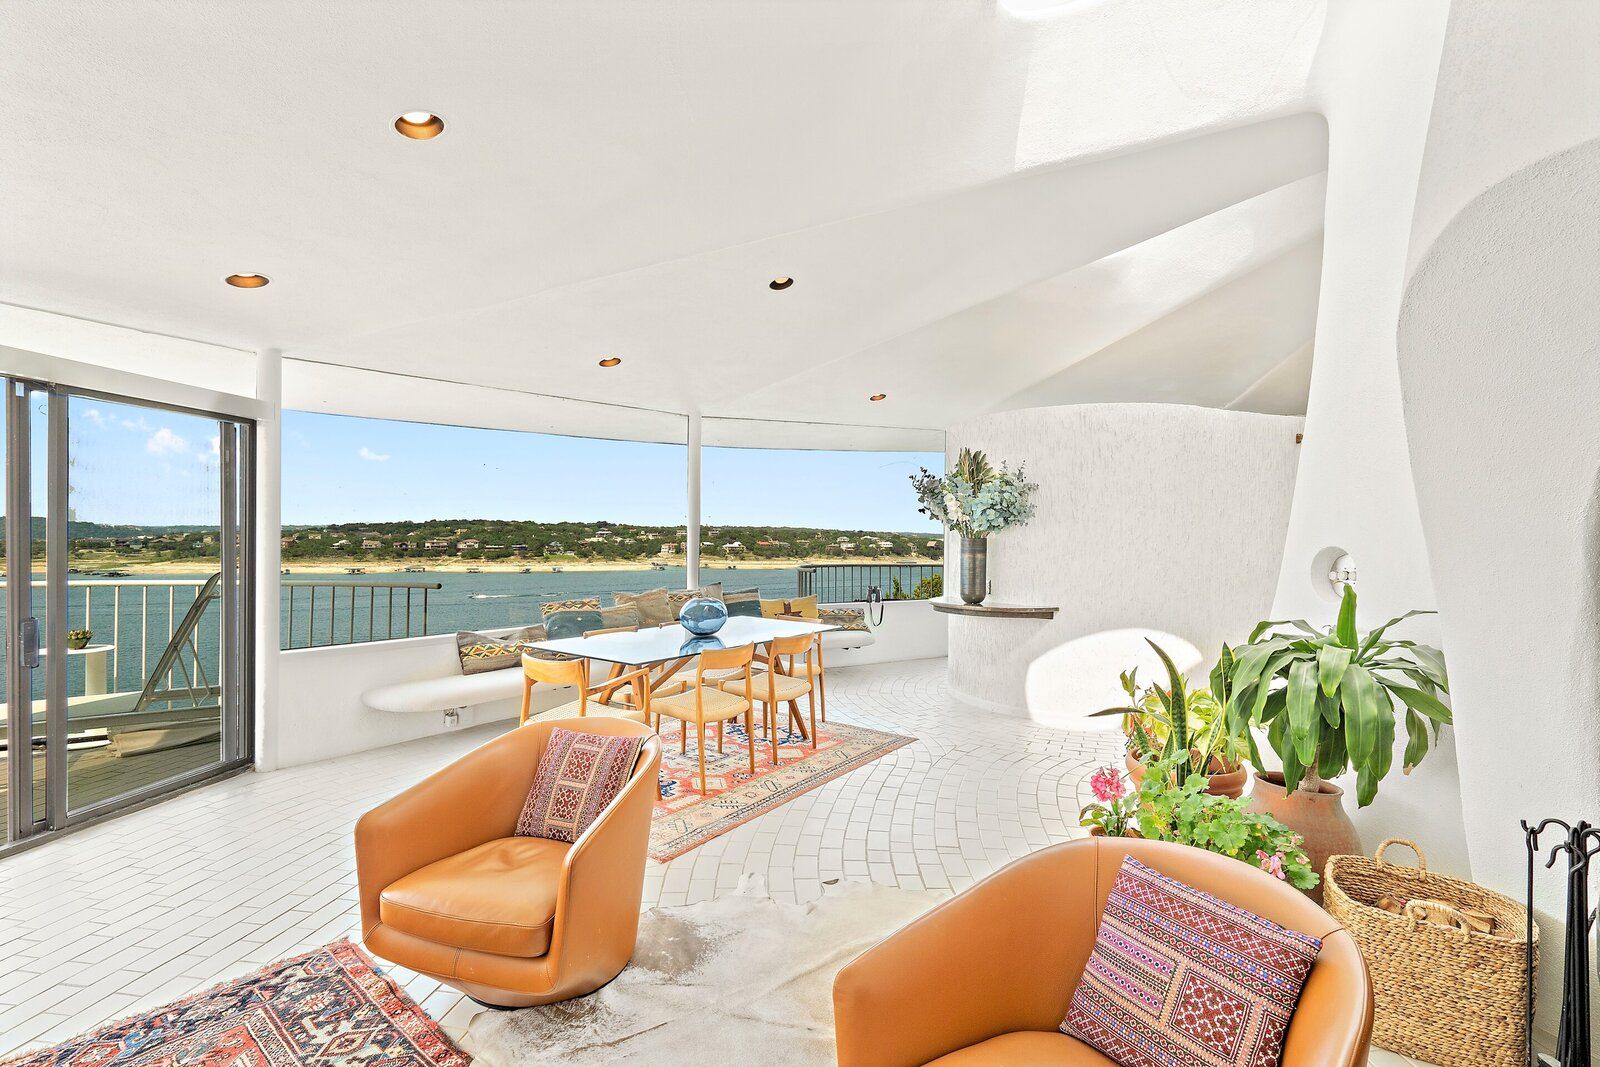 This home offers panoramic views of Lake Travis.  Photo 5 of 7 in Austin's Weird and Wonderful Sand Dollar House Can Be Yours for $2.2M Clams